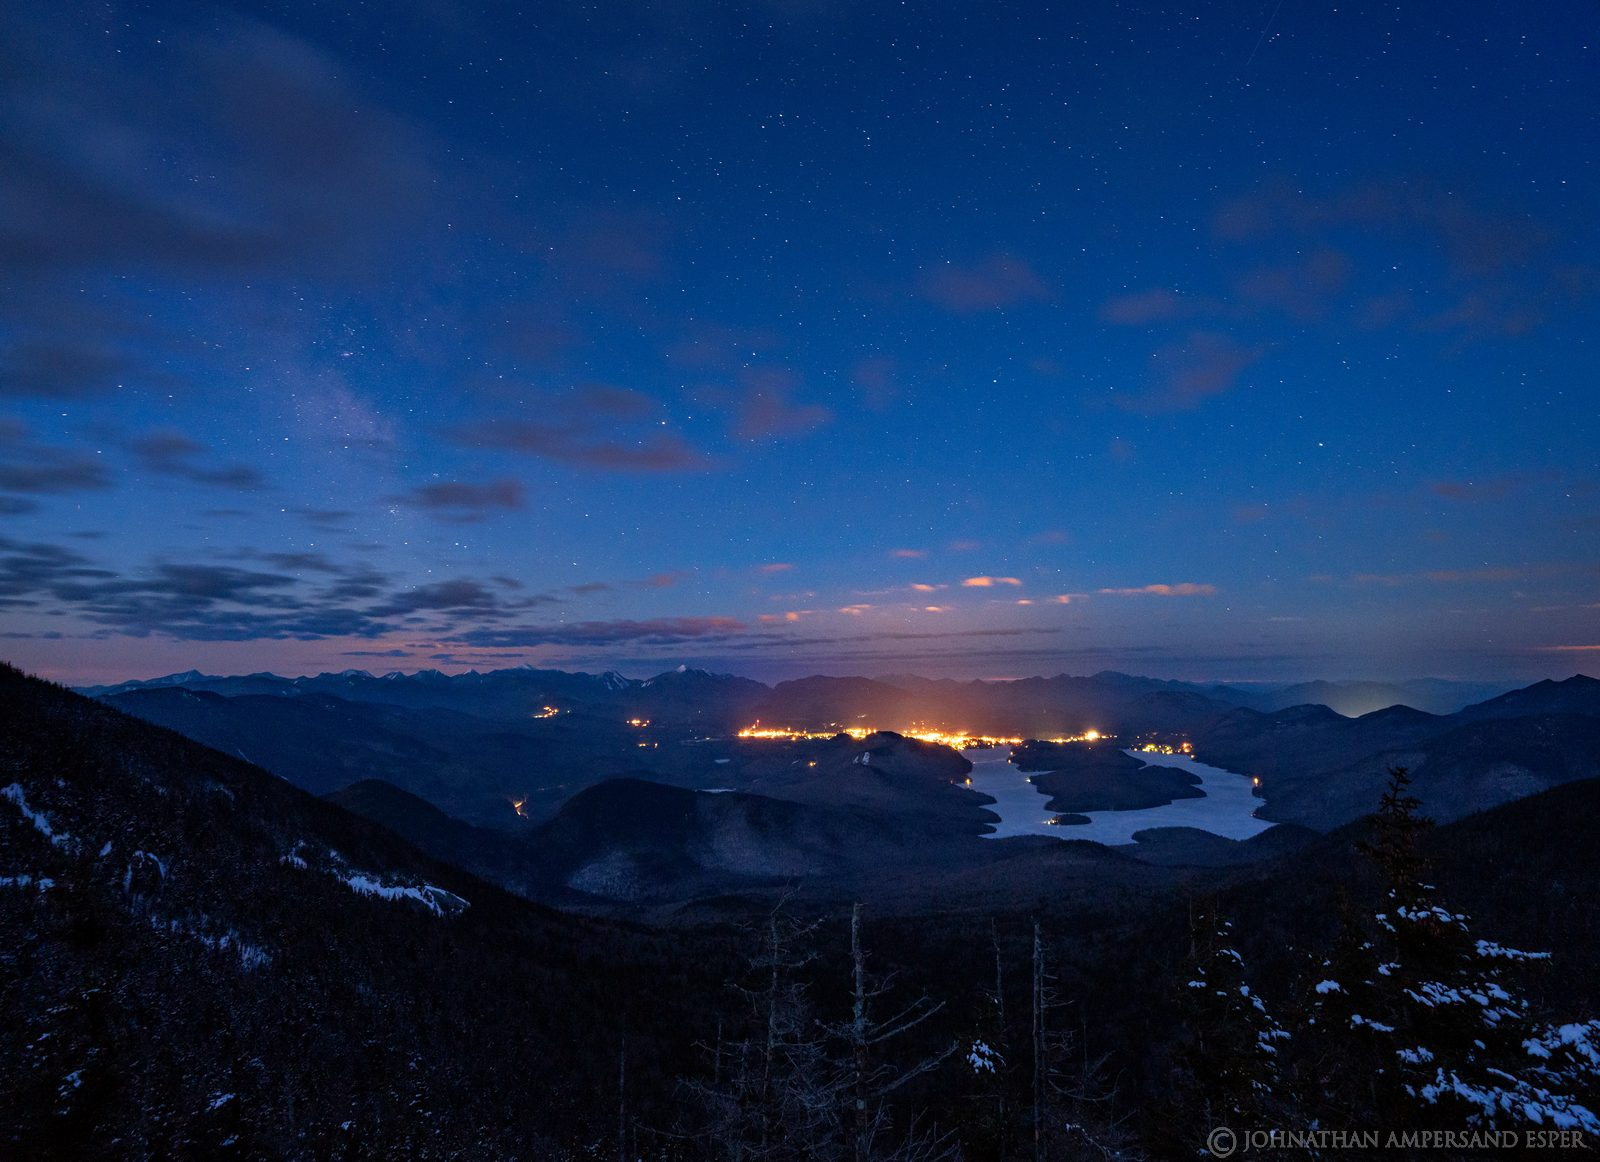 Whiteface Mt,Lake Placid,night,sky,stars,Milky Way,Whiteface Memorial Highway,winter,village of Lake Placid, photo